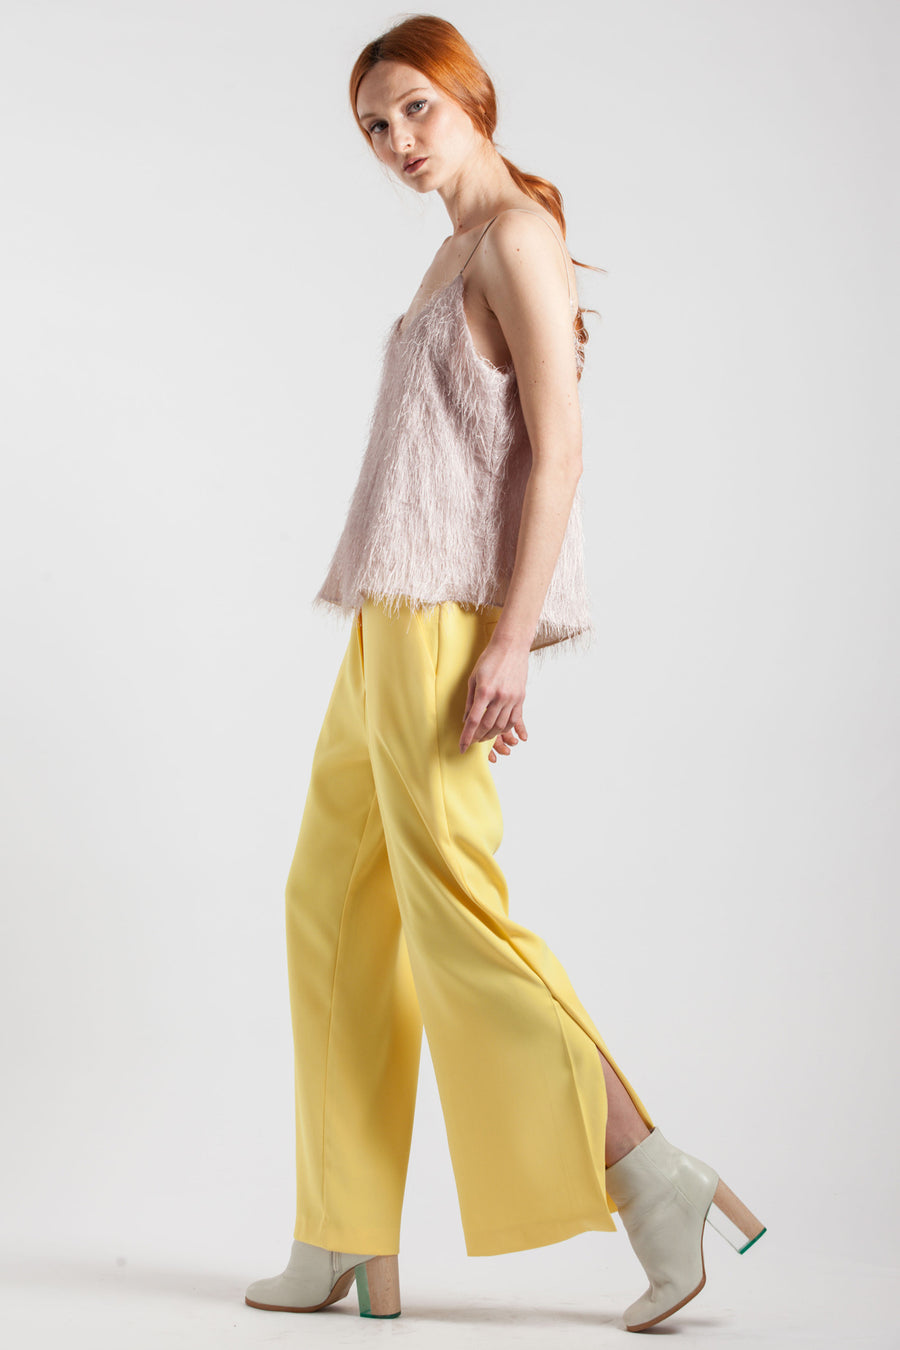 Soft Yellow Trousers - Via Ennji Online Store